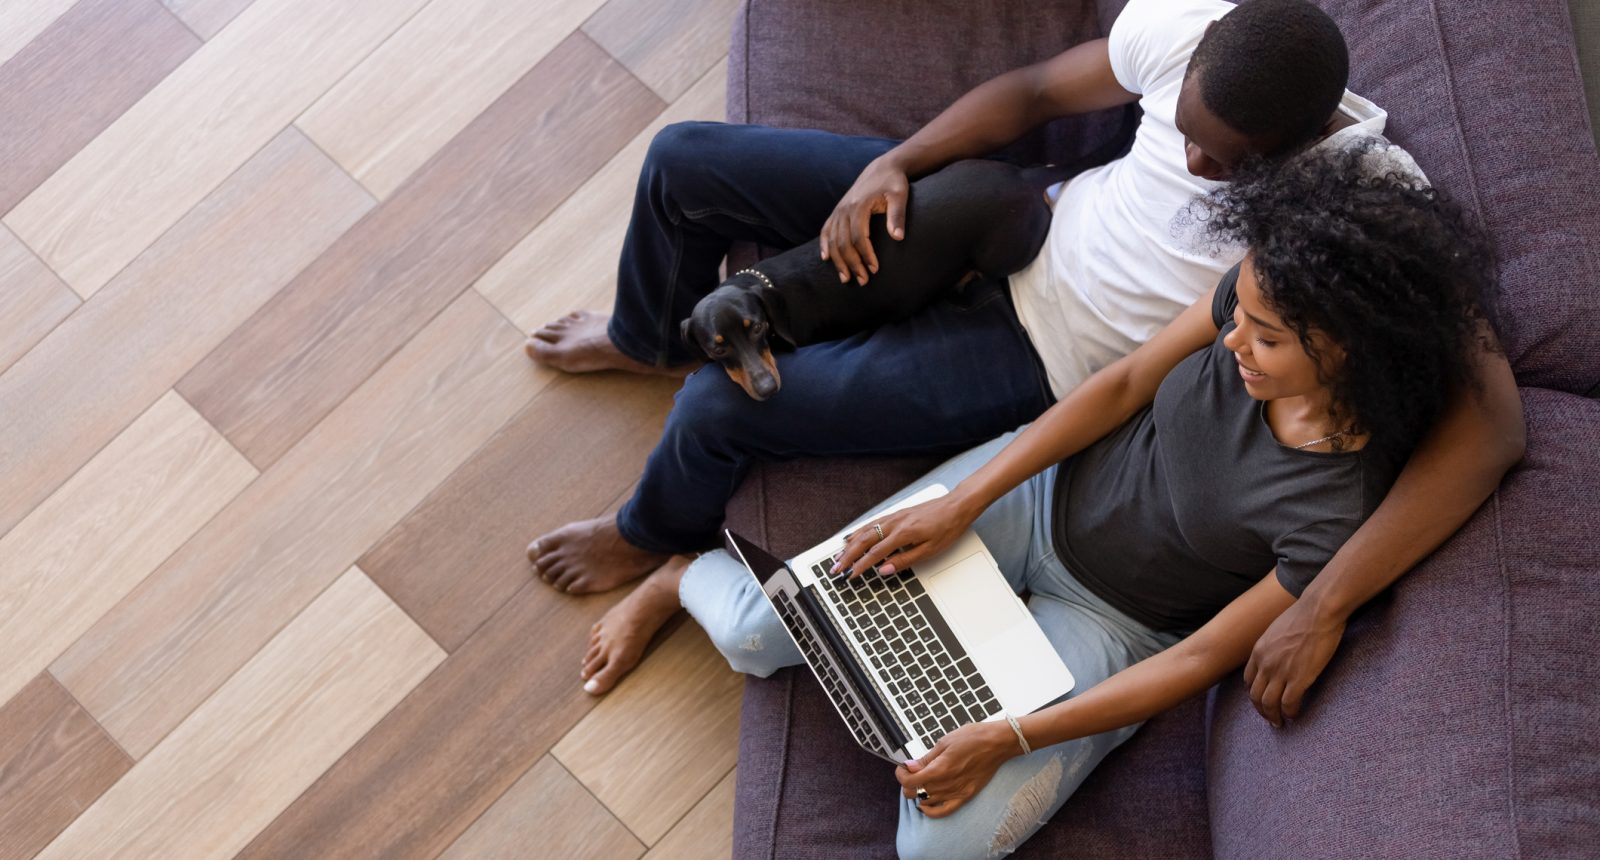 Couple cuddling on couch looking at laptop with dog on lap